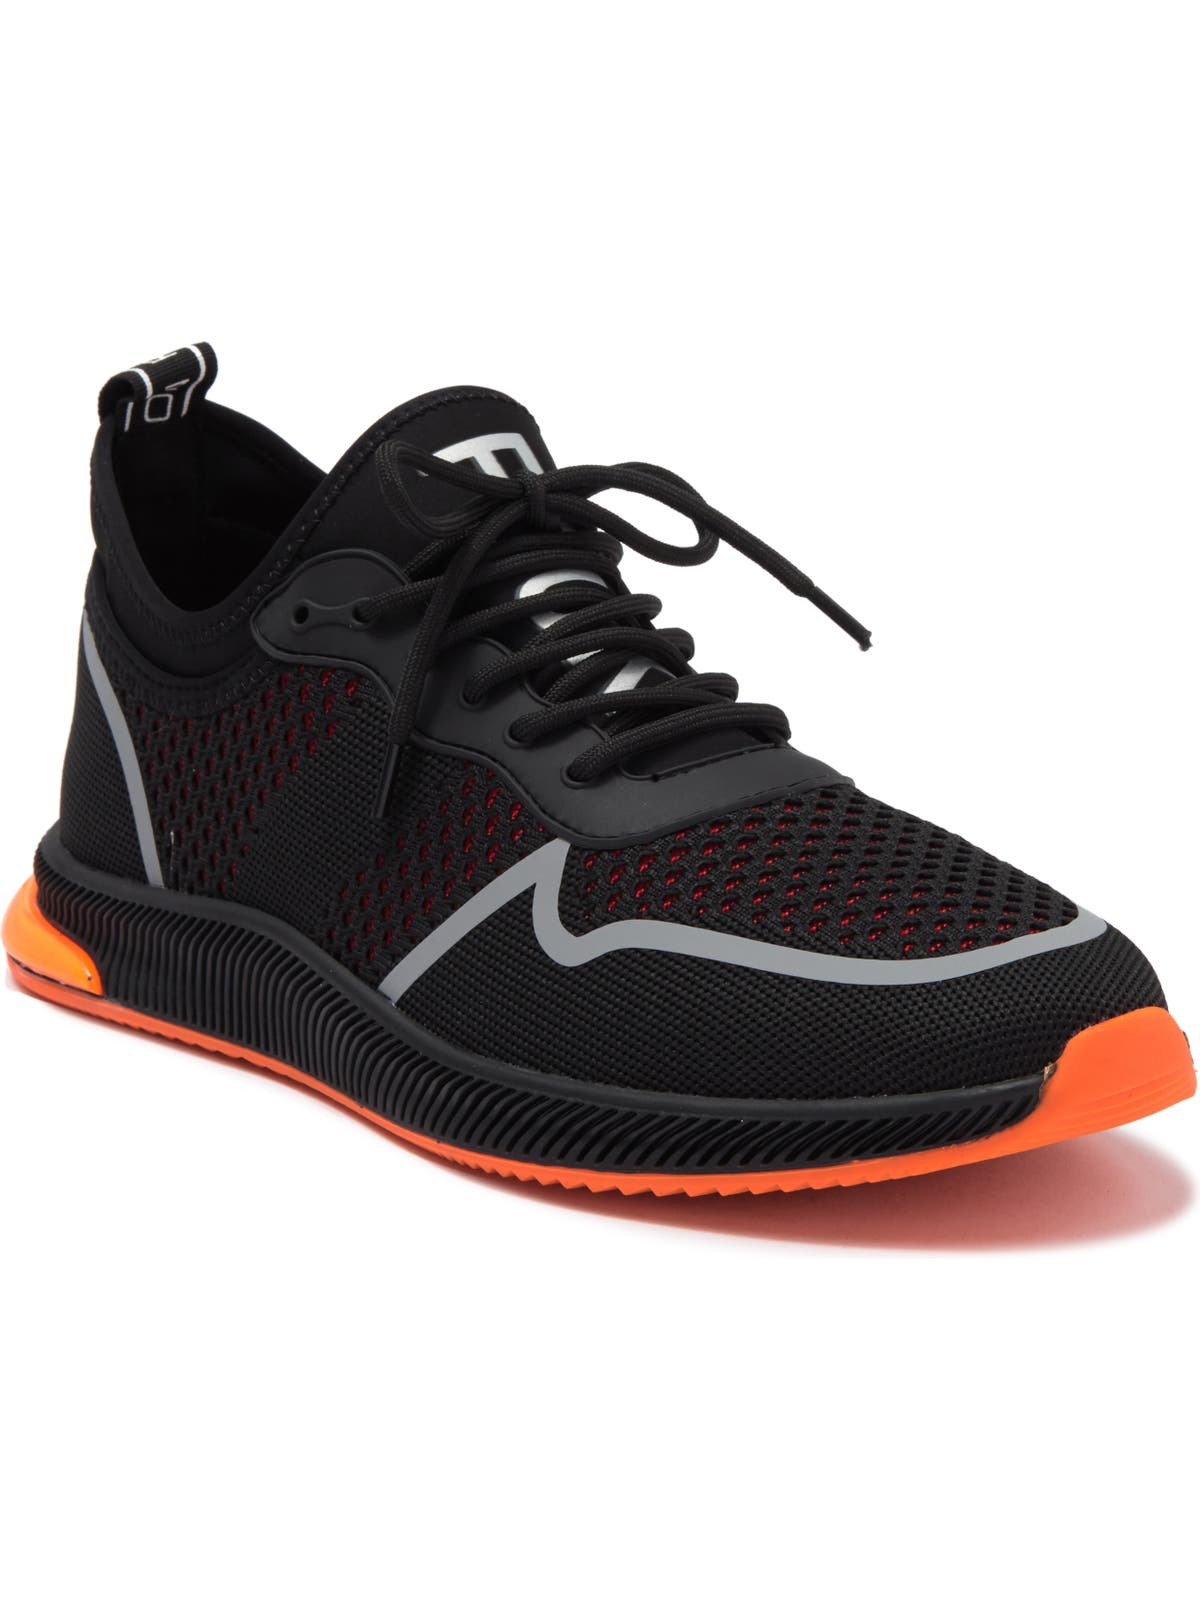 French Connection Guy Athletic Men's Sneaker